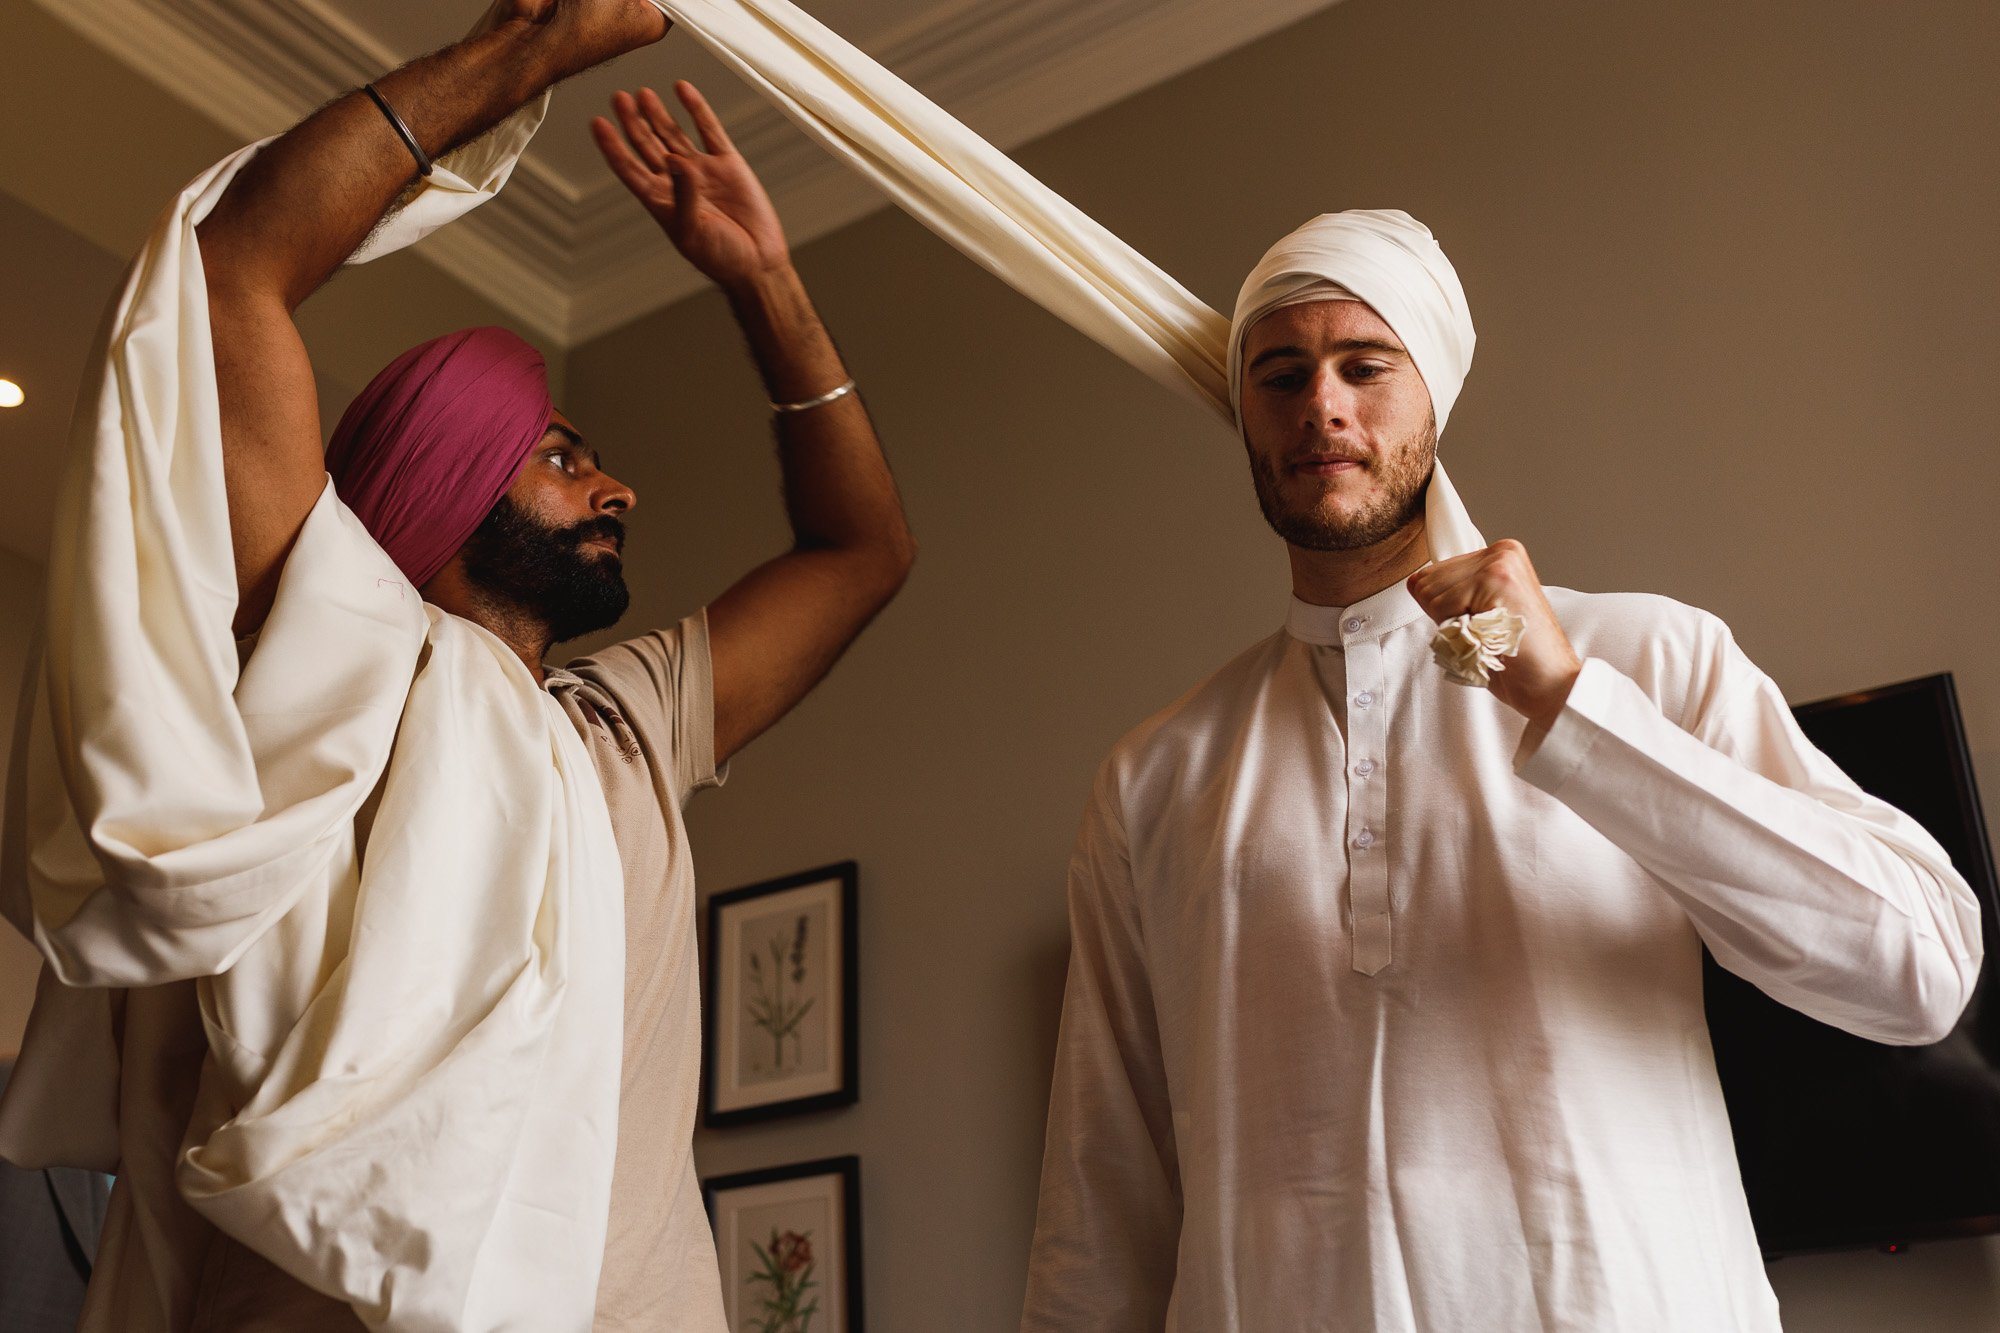 De Vere Wokefield Estate, Asian wedding photographer, groom prep, pagh, turban